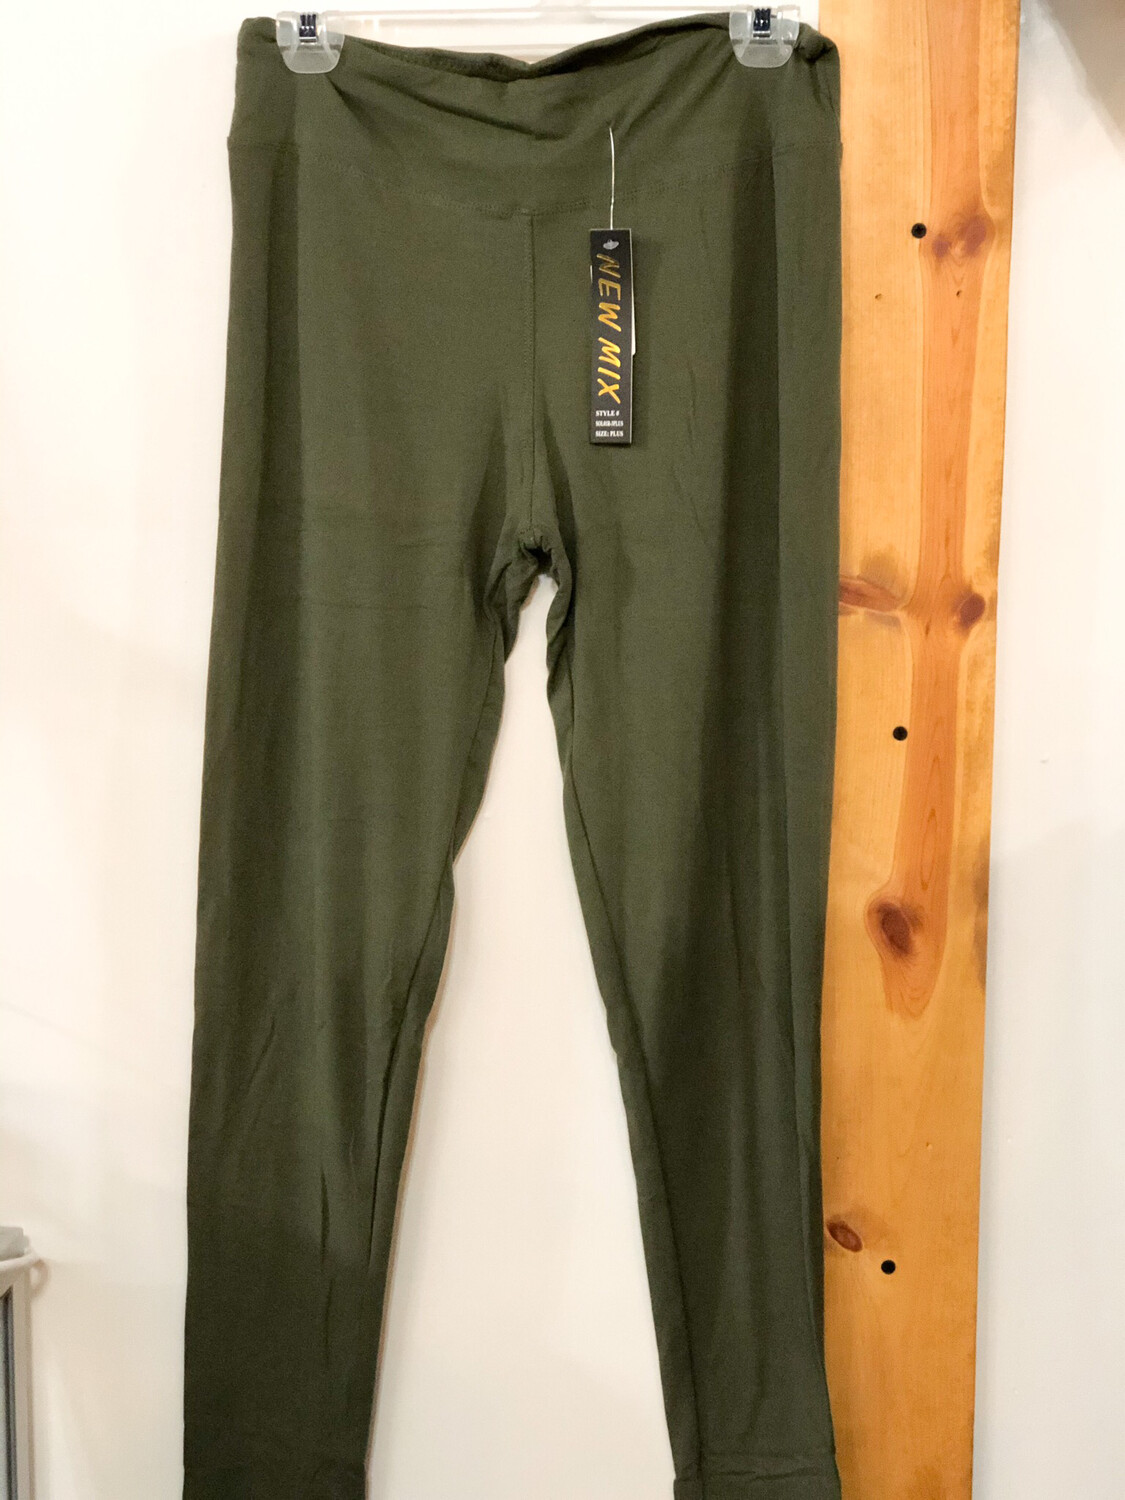 Leggings Olive Green Solid Plus Size